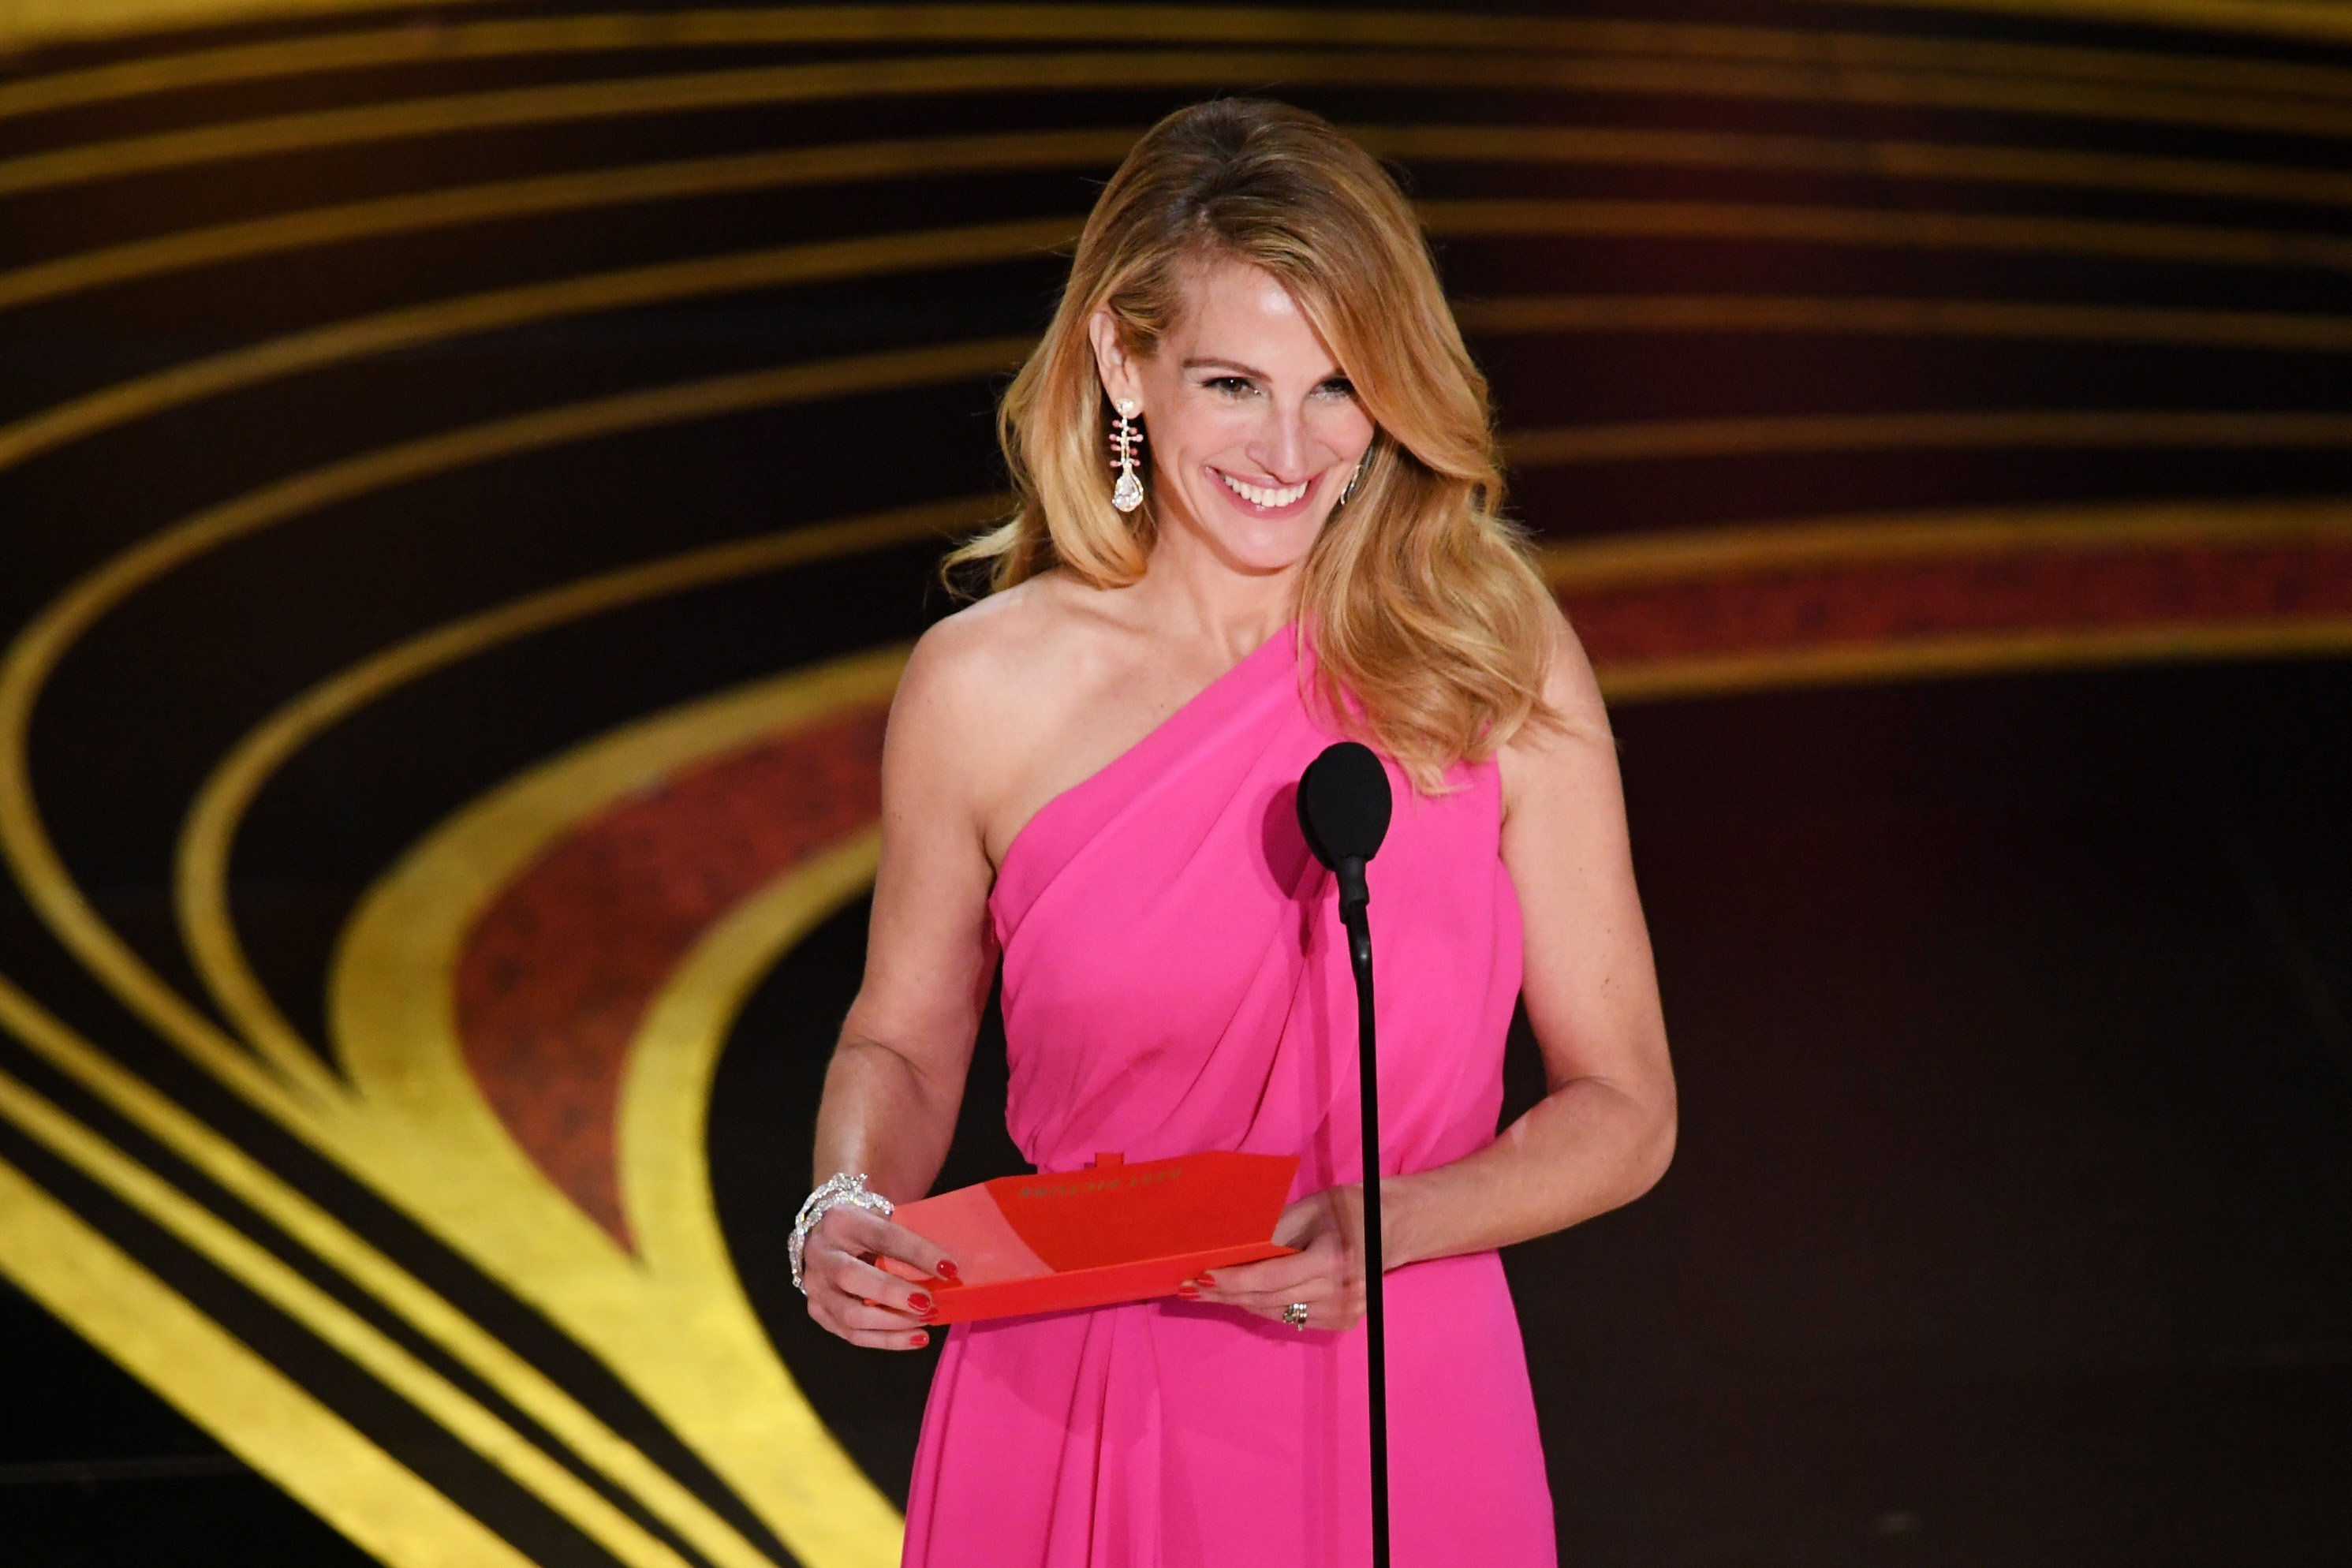 Julia Roberts wins for best Emmy snub reaction